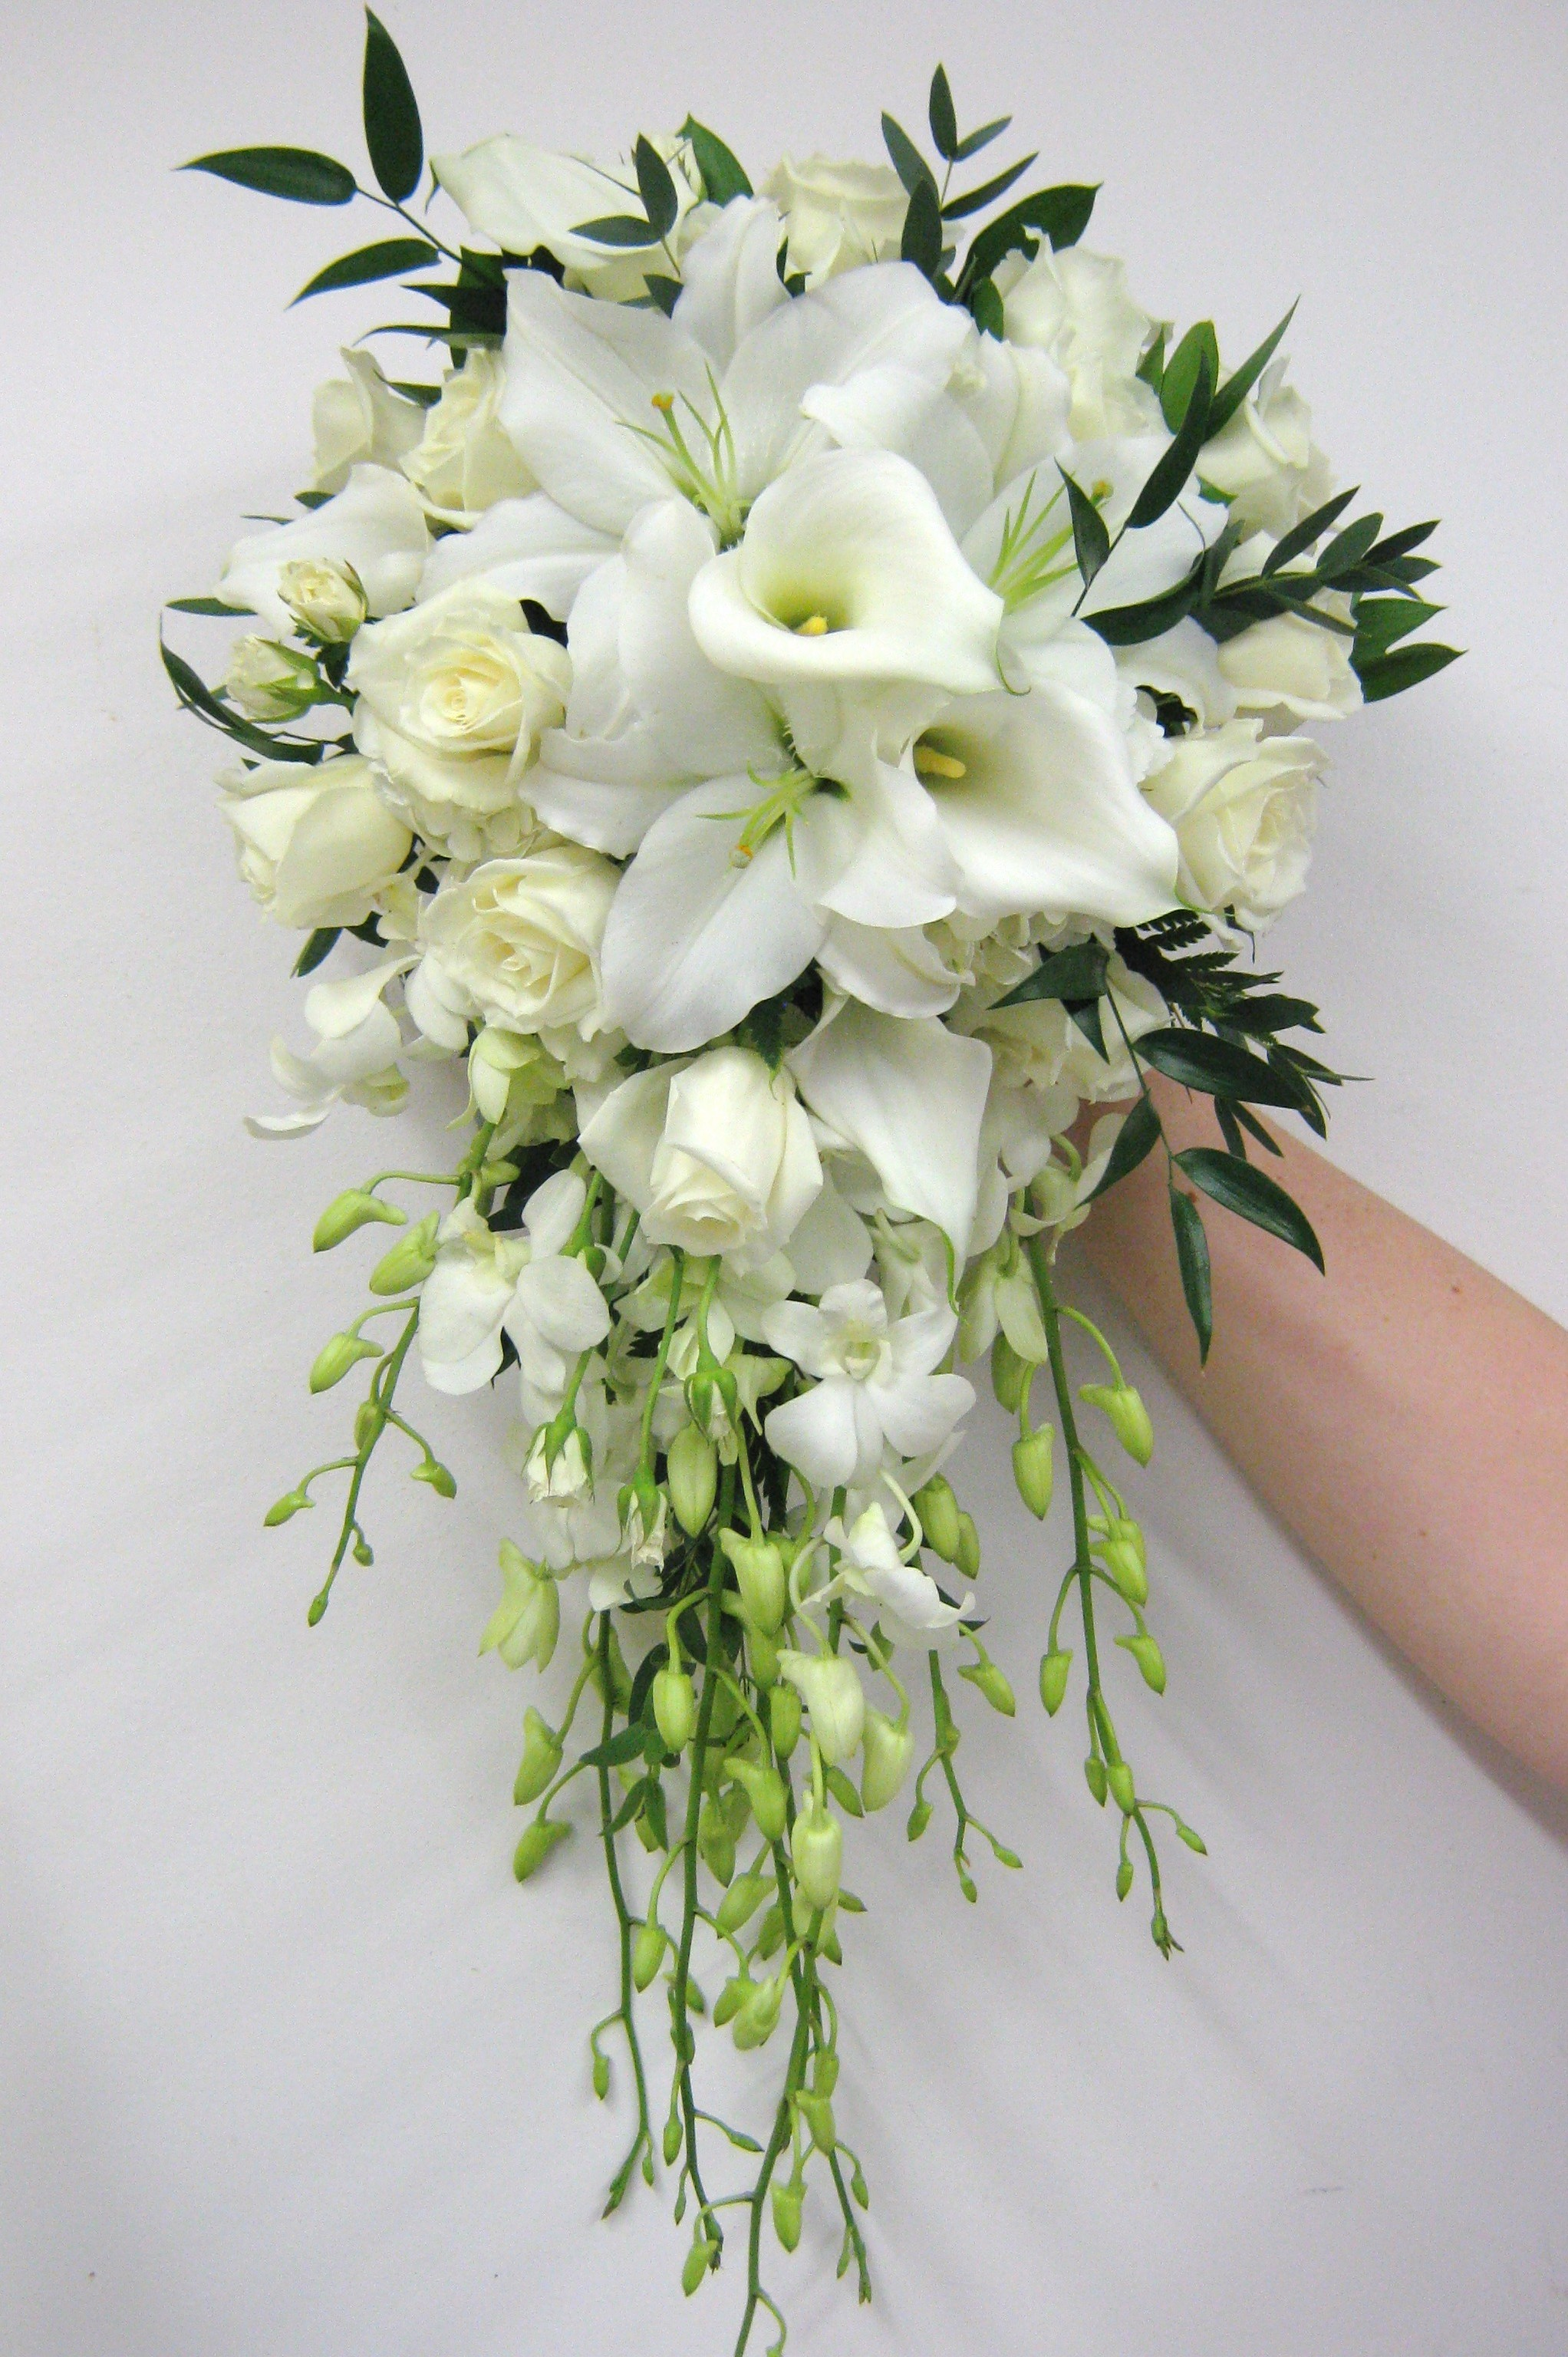 Freesia buffalo wedding event flowers by lipinoga florist wedding flowers lancaster izmirmasajfo